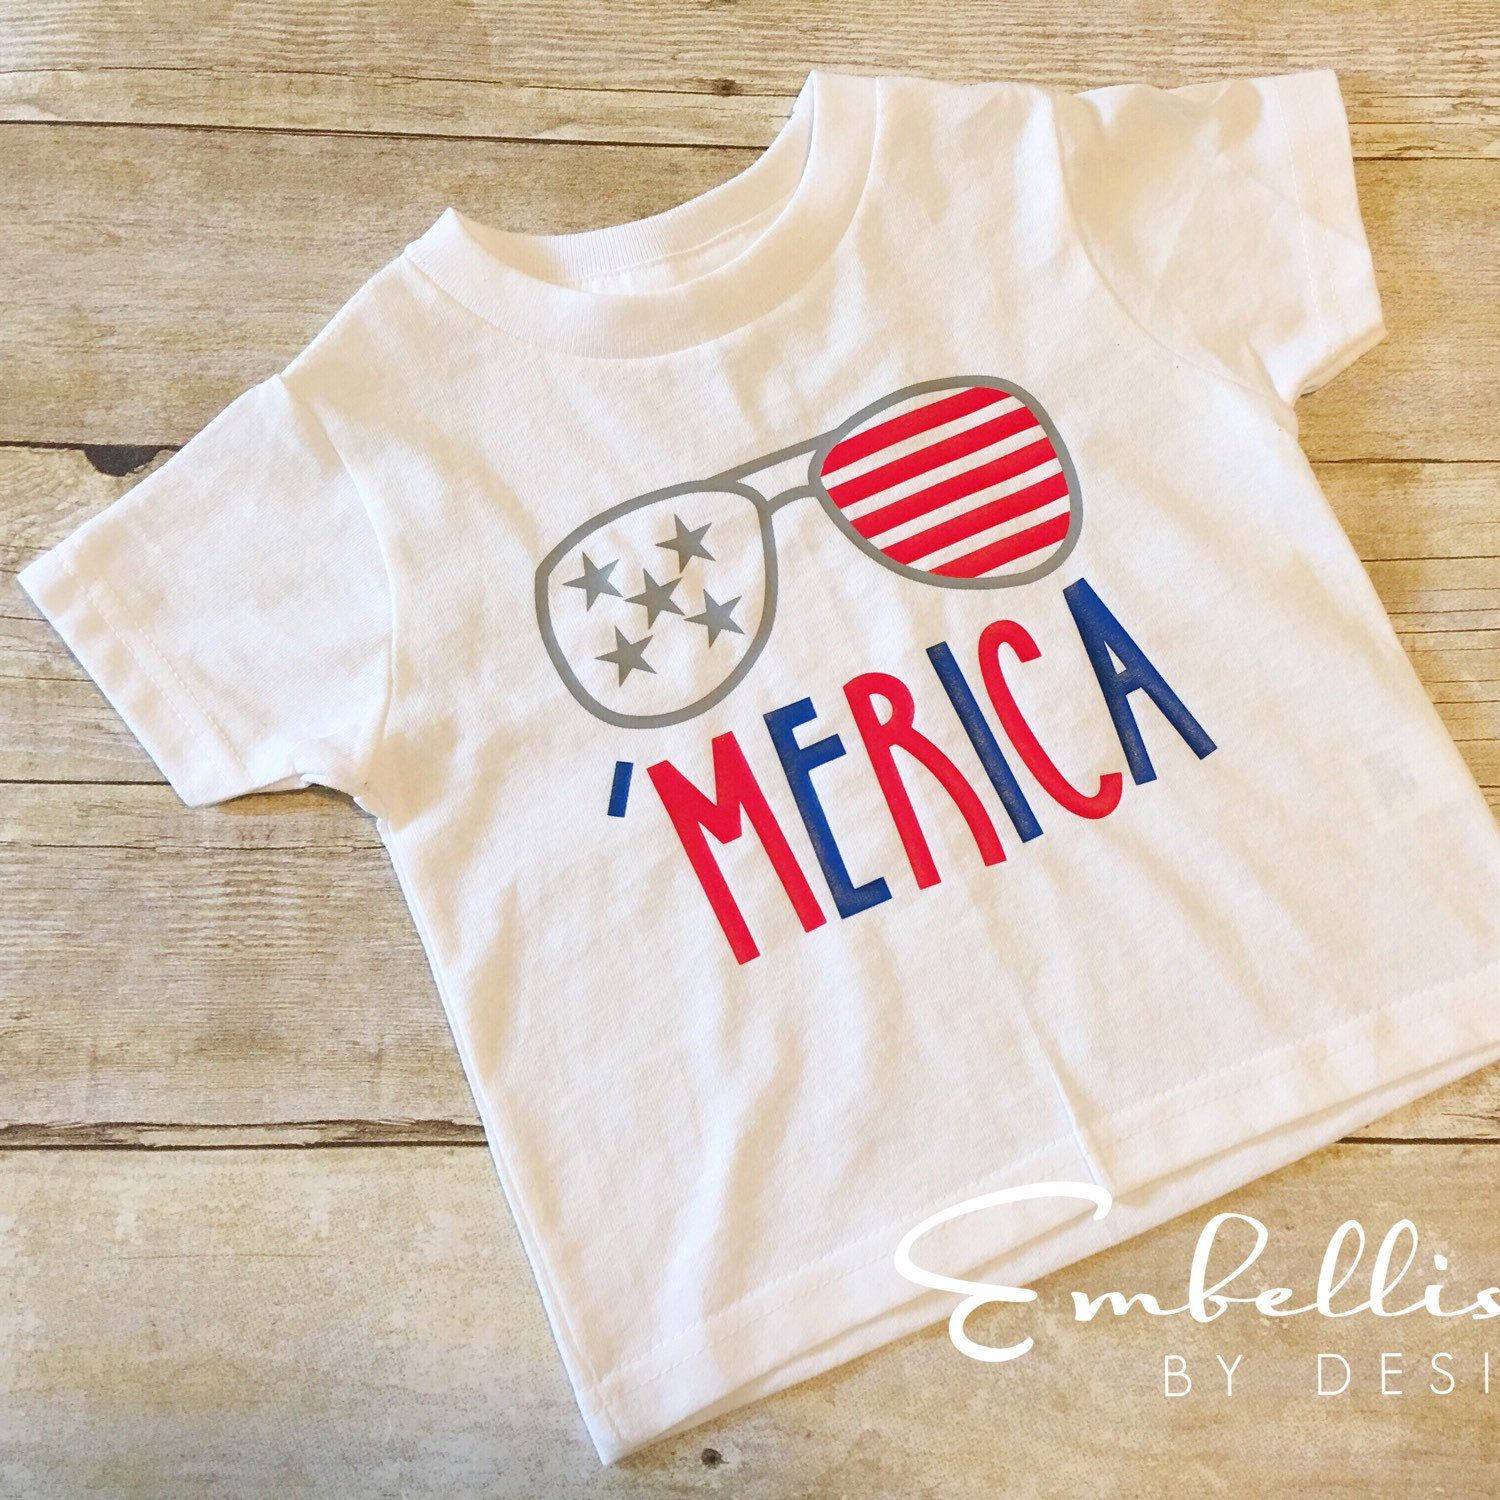 e0af817f Merica Baby Shirt, Summer Shirt, Baby Boy, Toddler Boy, Trendy Baby Girl,  Aviator Sunglasses, USA, America, Hipster Kid, 4th Fourth of July